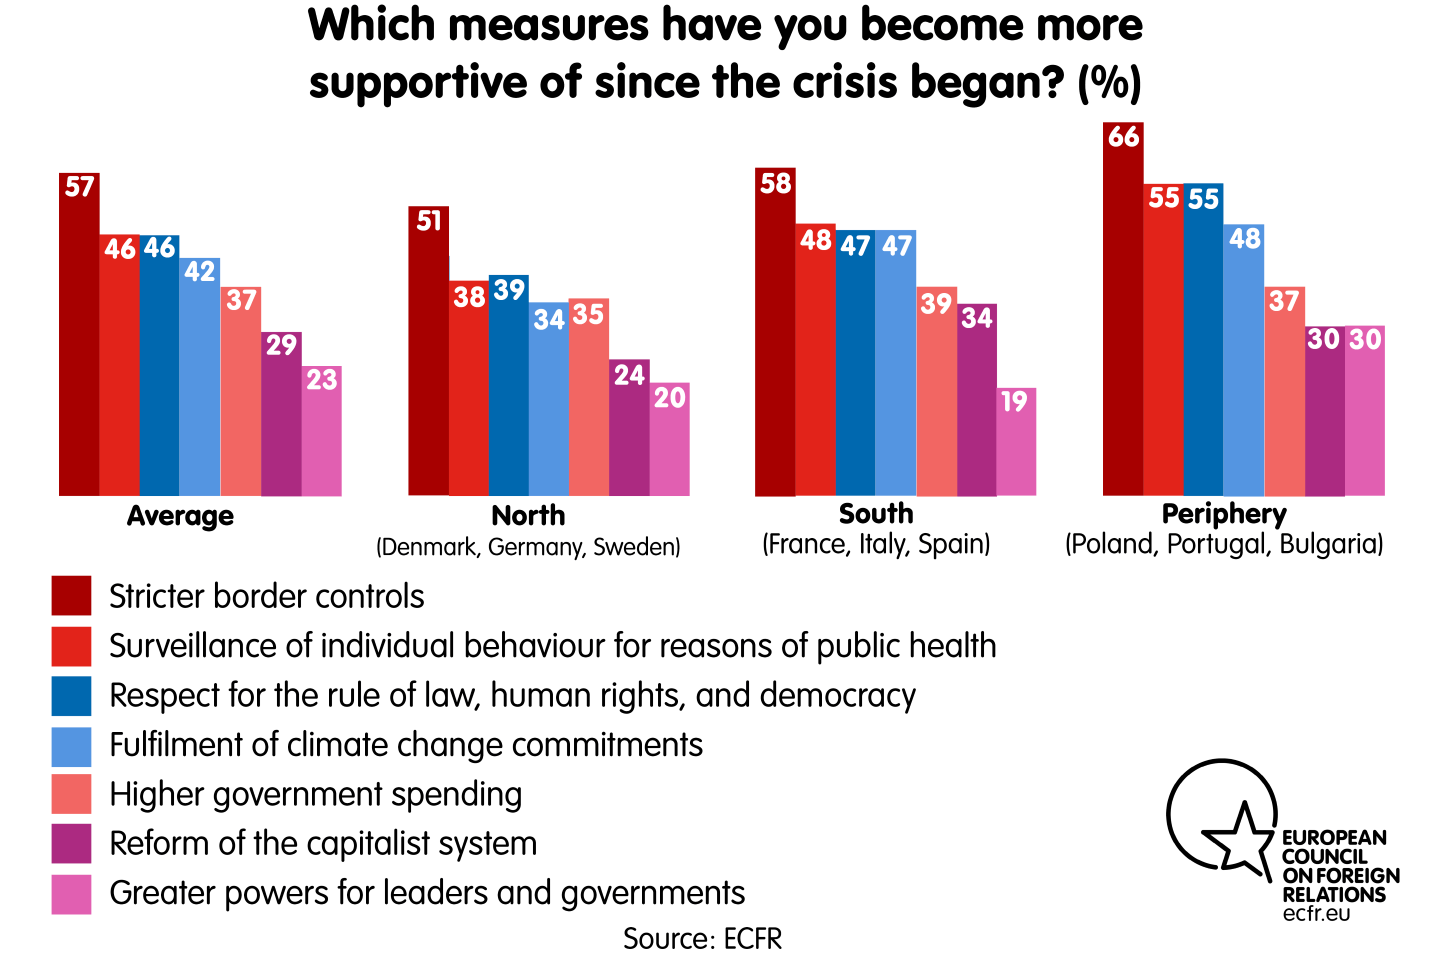 Which measures have you become more supportive of since the crisis began?